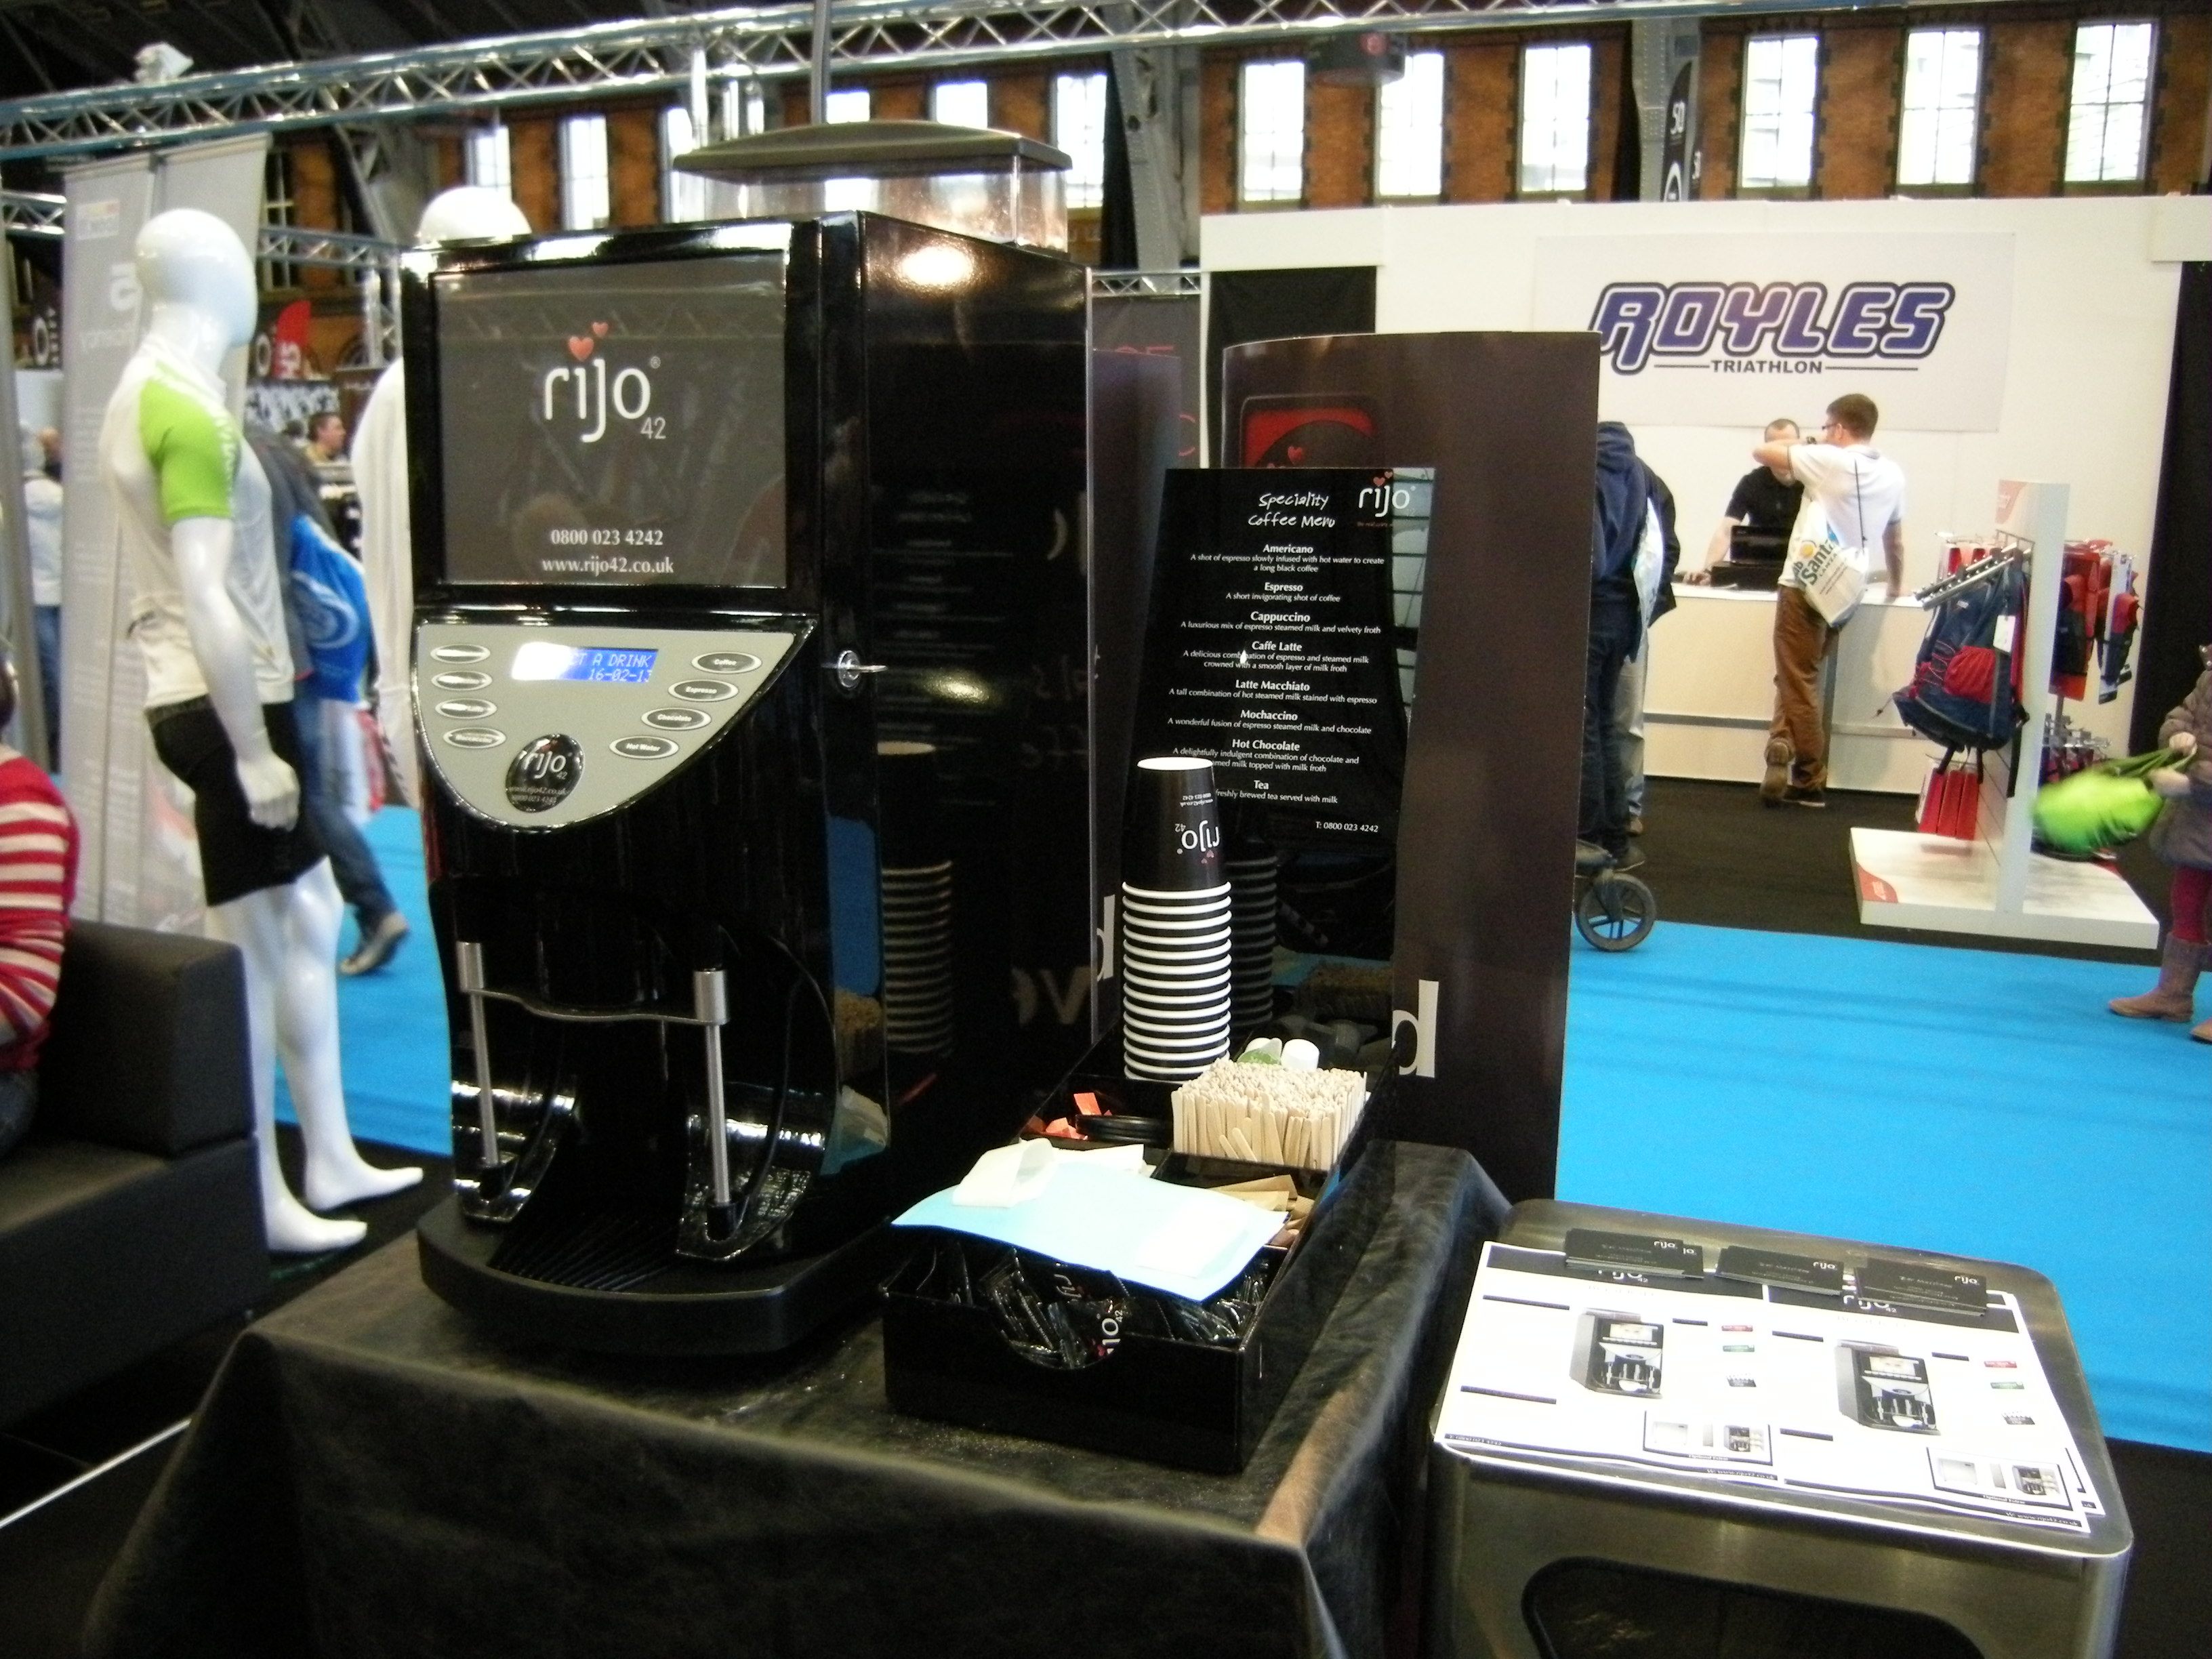 Exhibition Stand Coffee : Rijo coffee at the bike and triathlon show rijo ingredients ltd